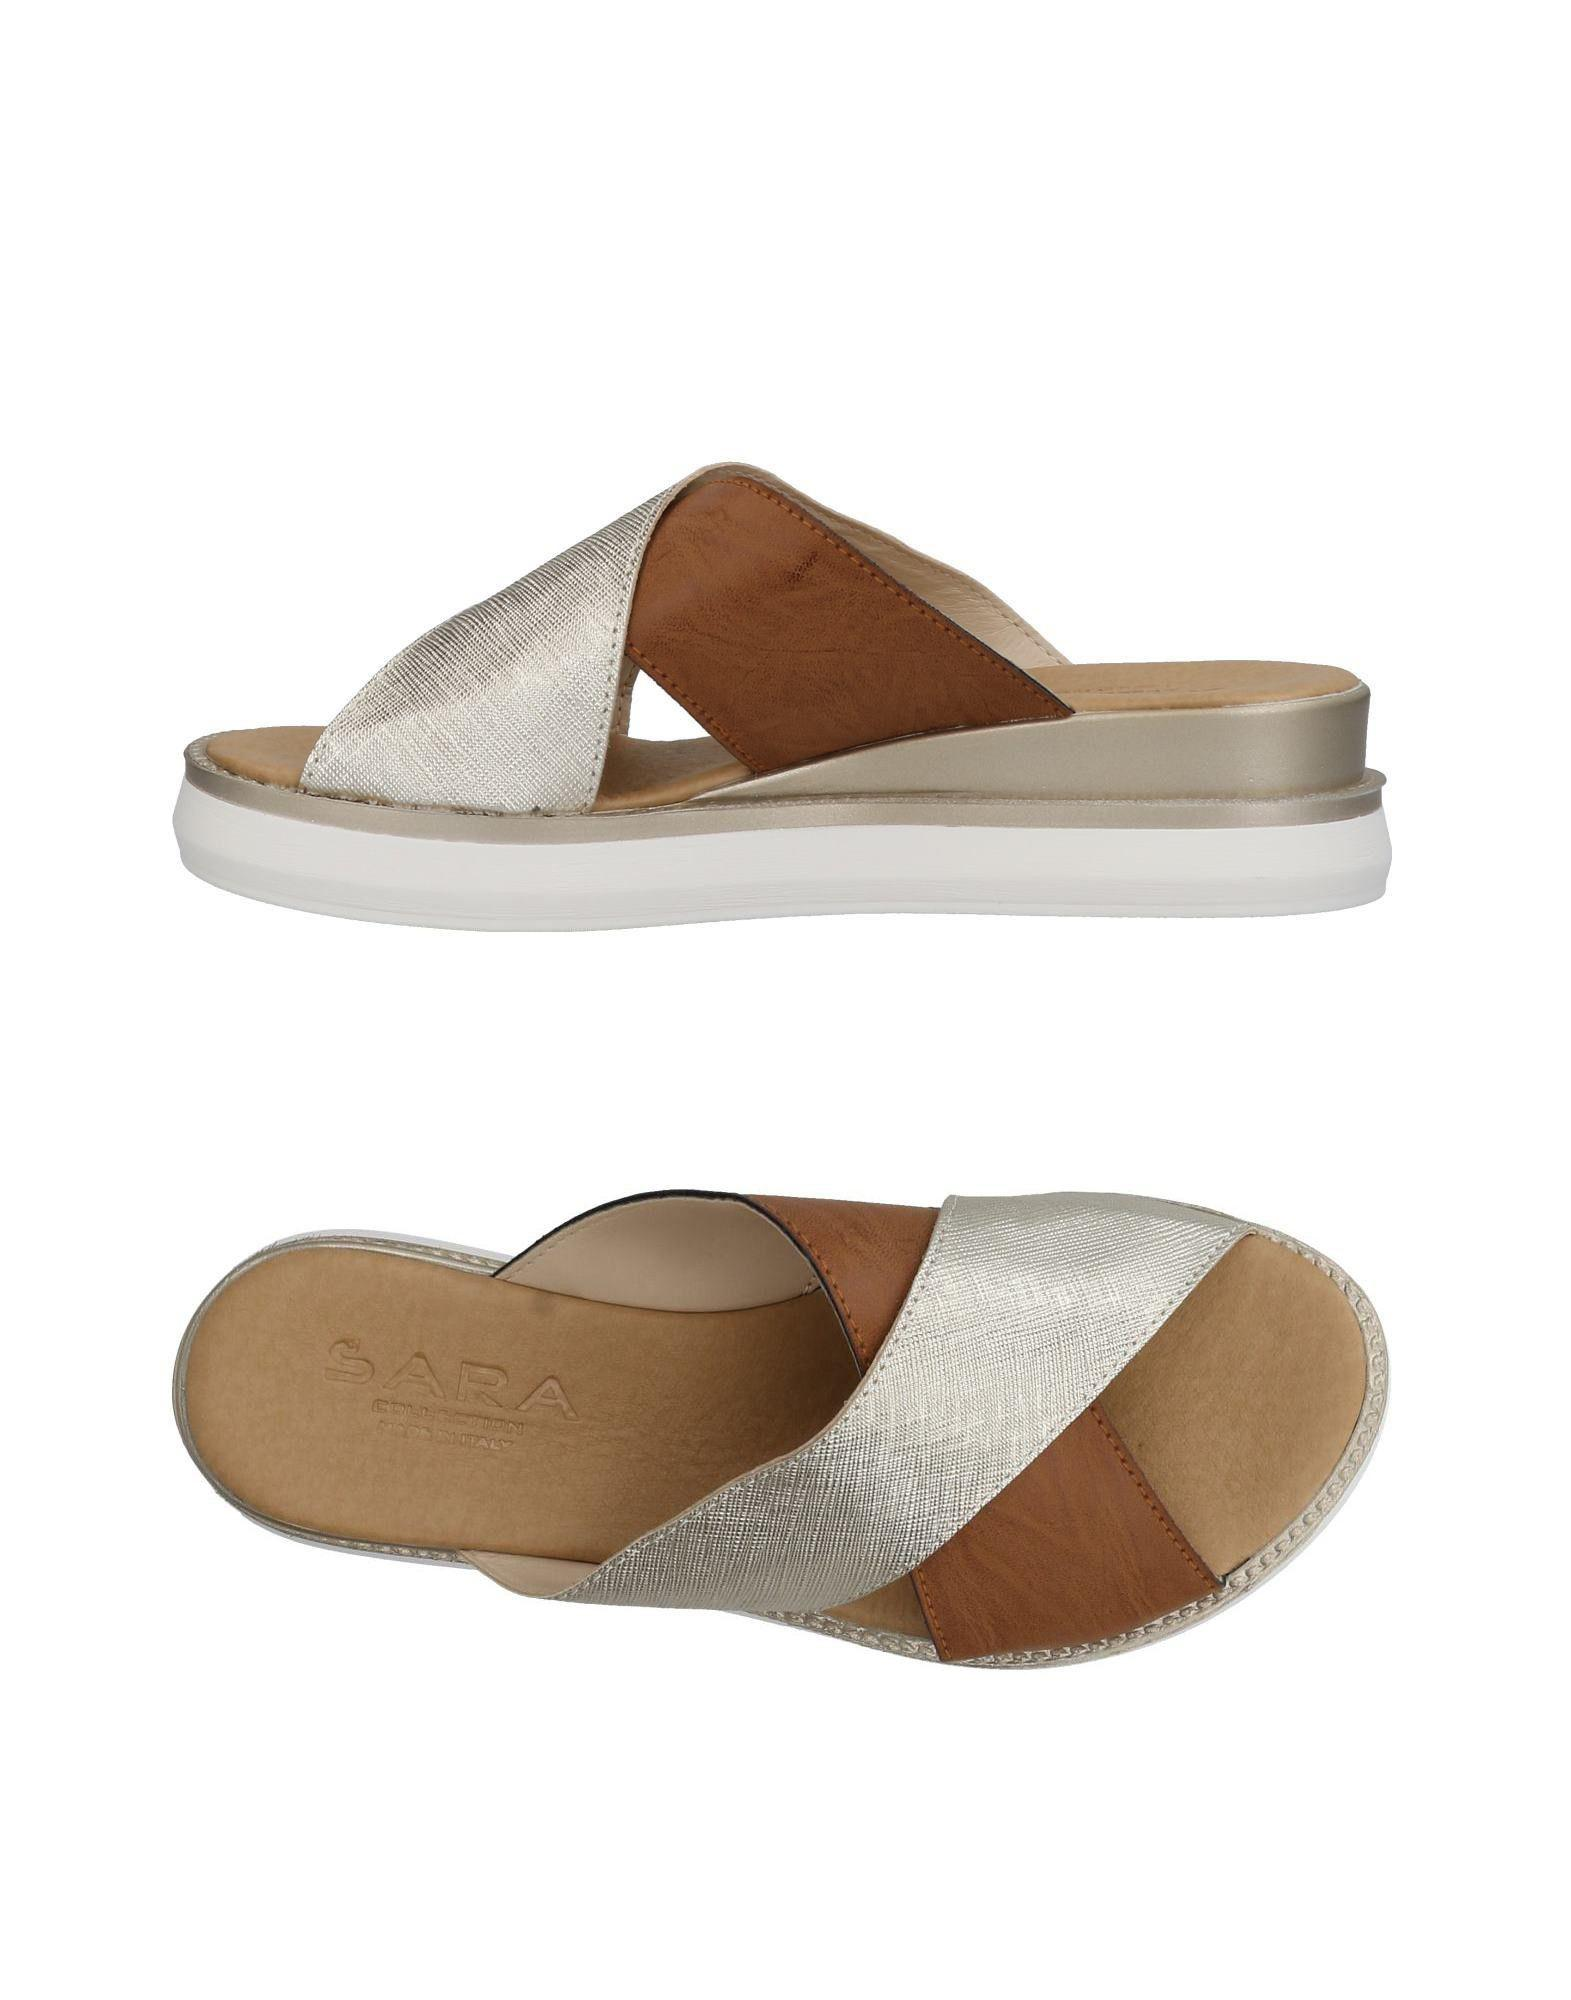 FOOTWEAR - Sandals Sara Collection 2ToCG7A